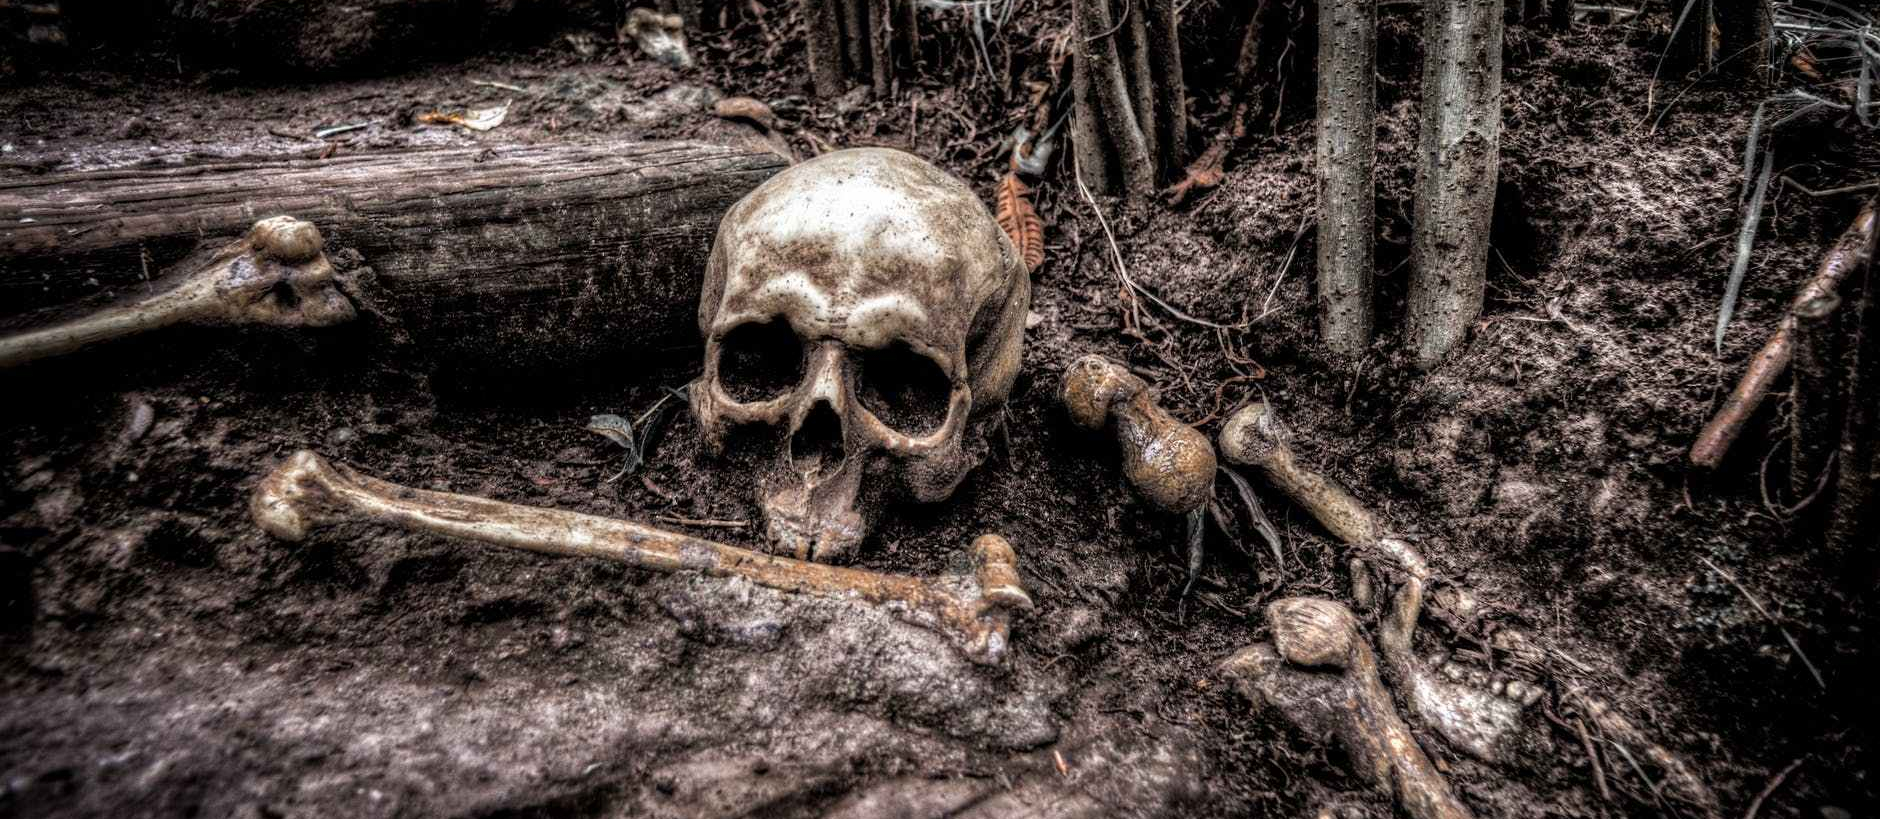 Skull and bones, half buried in a forest.